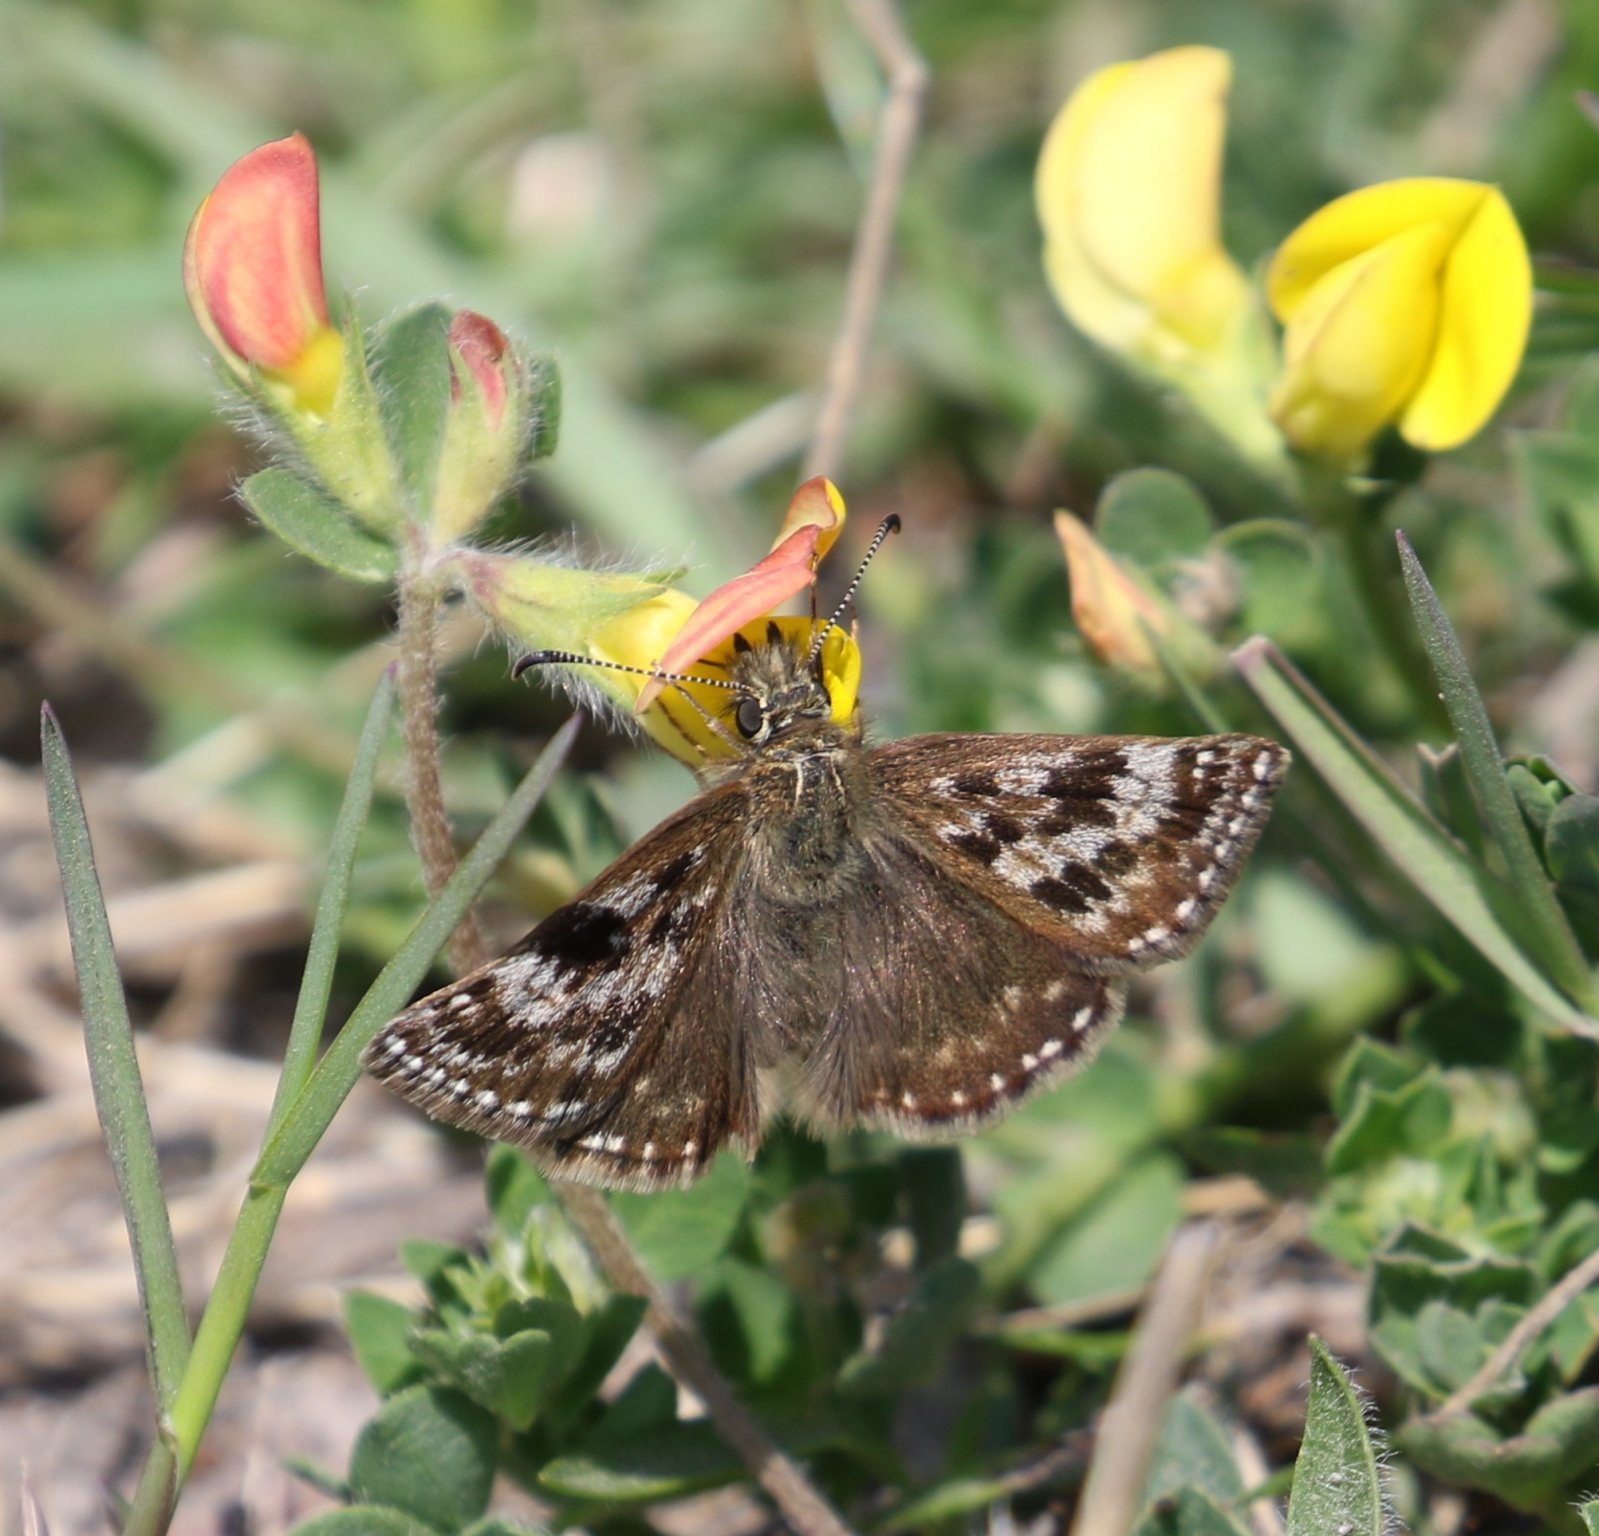 Sighting >> Butterfly Conservation - Cumbria Branch - Sighting Image